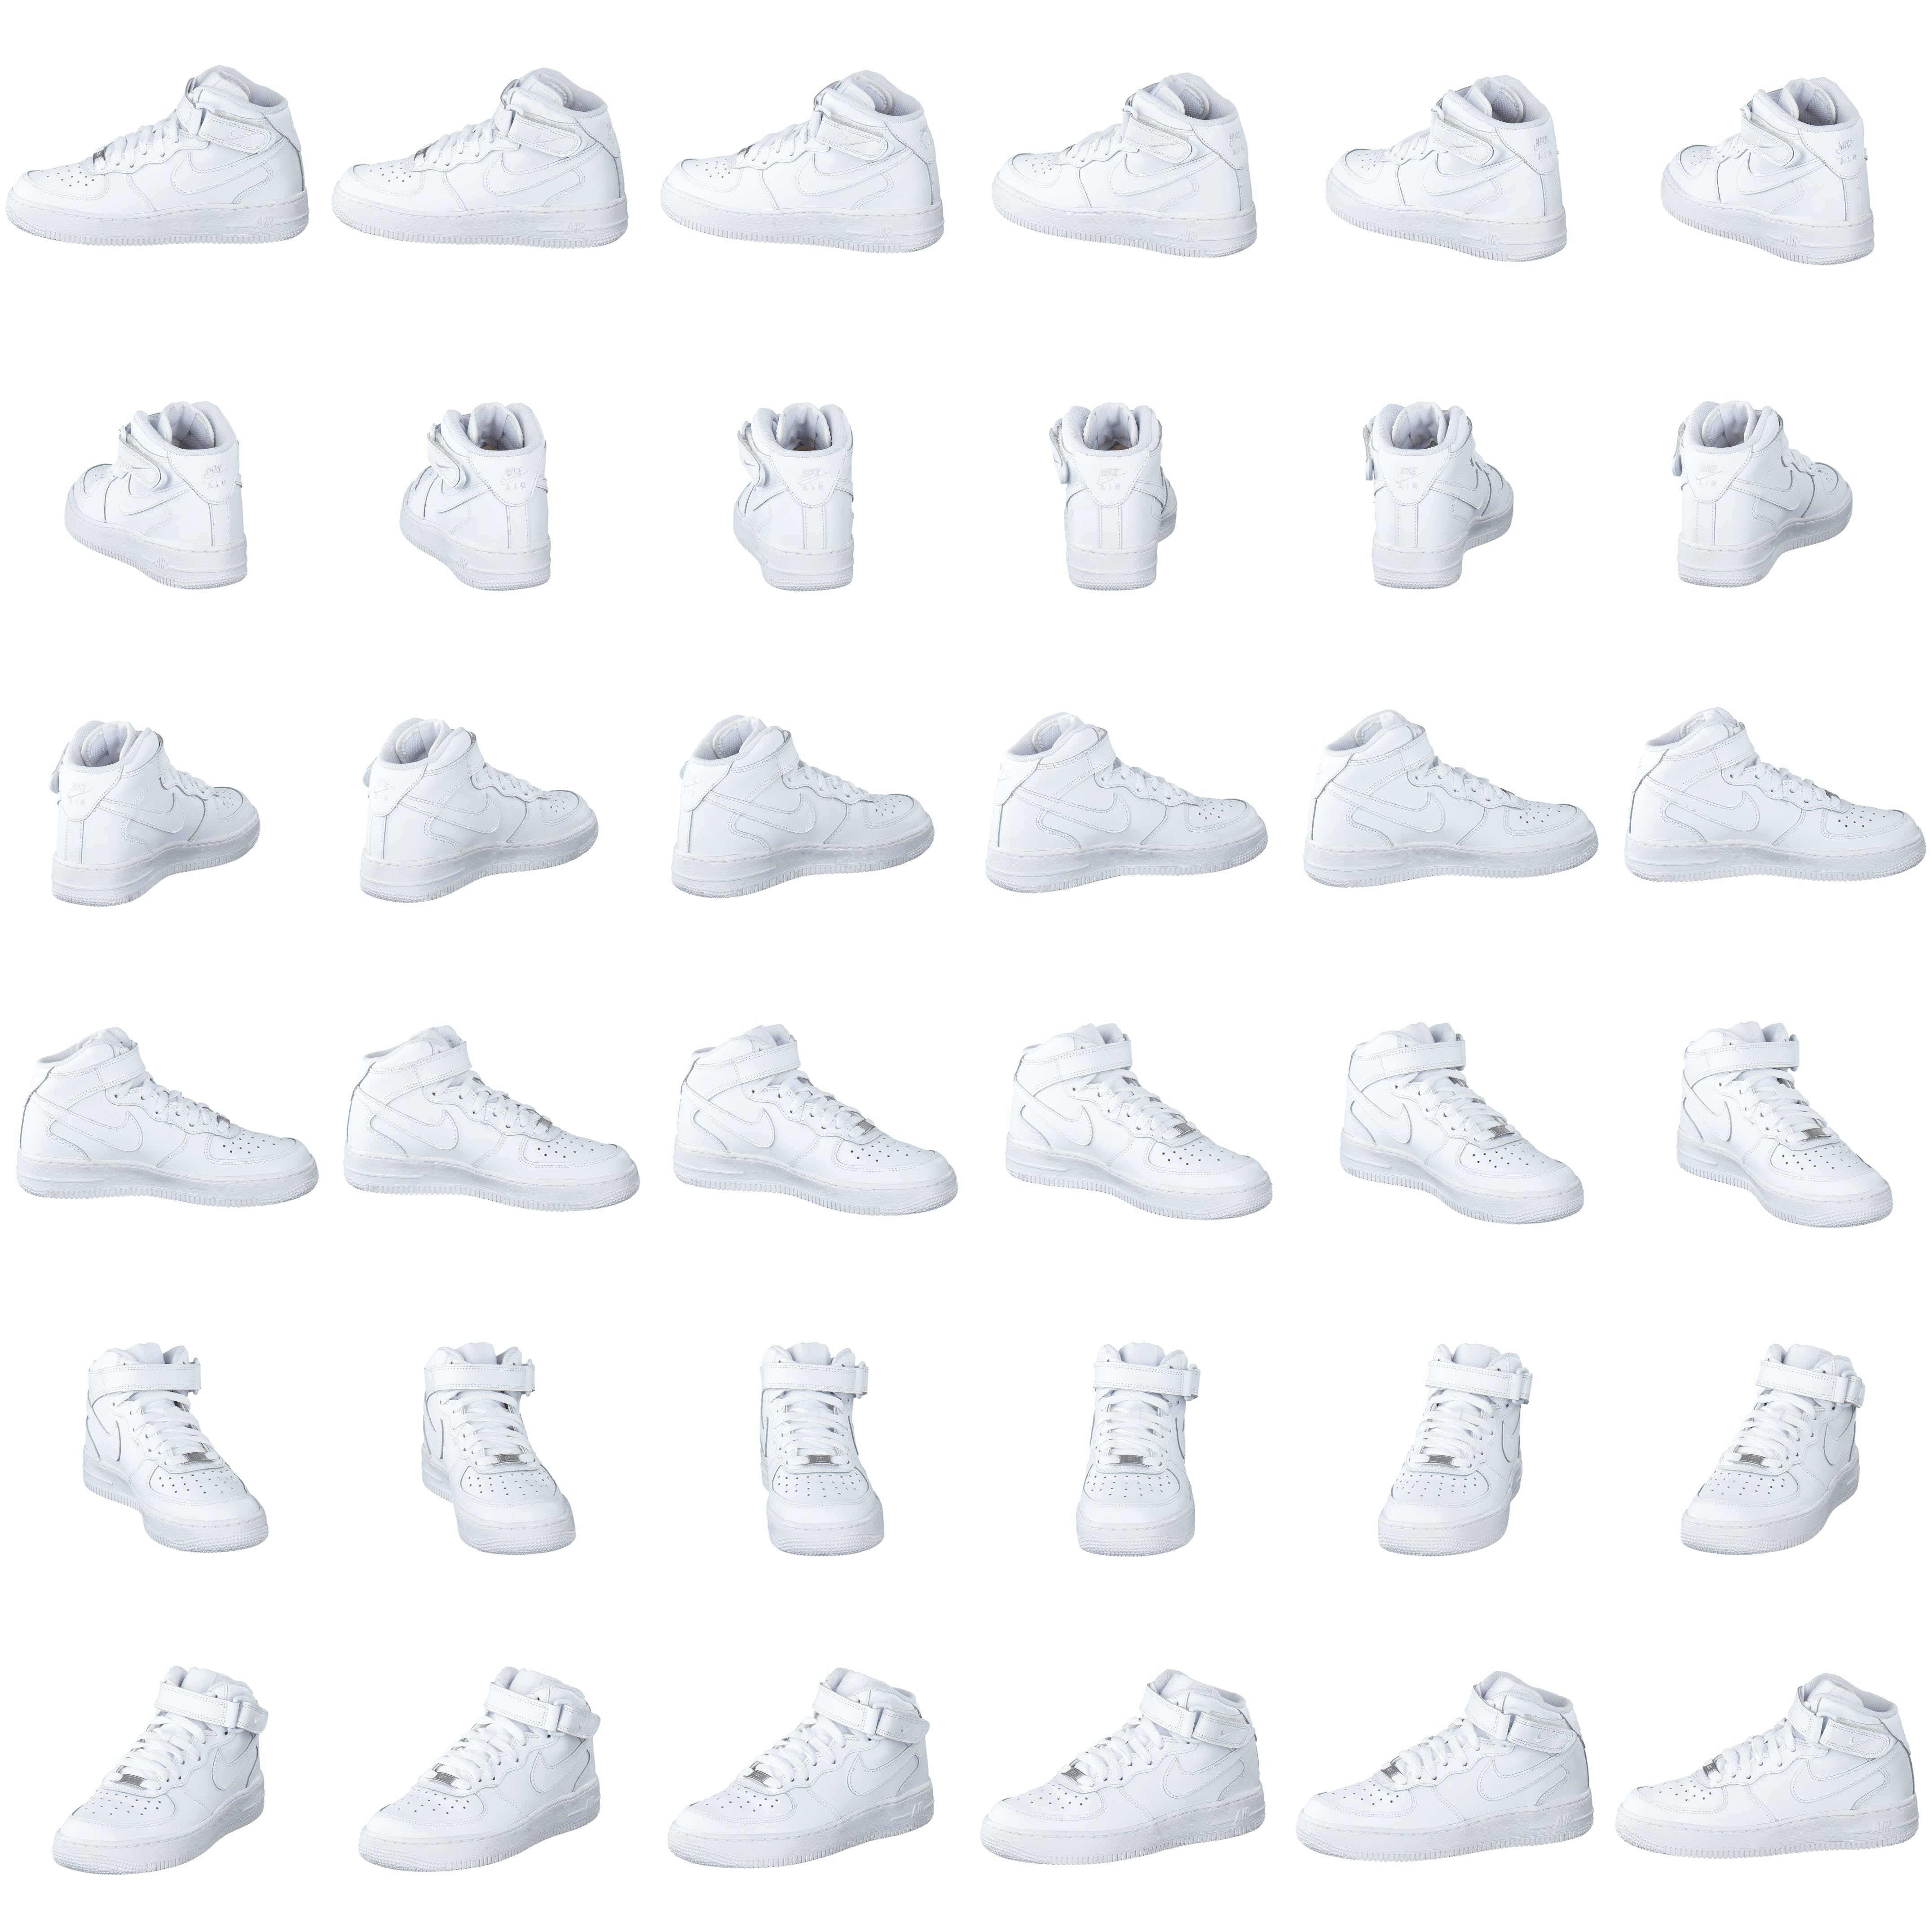 check out e0991 c6ef8 Köp Nike Air Force 1 Mid White White vita Skor Online   FOOTWAY.se